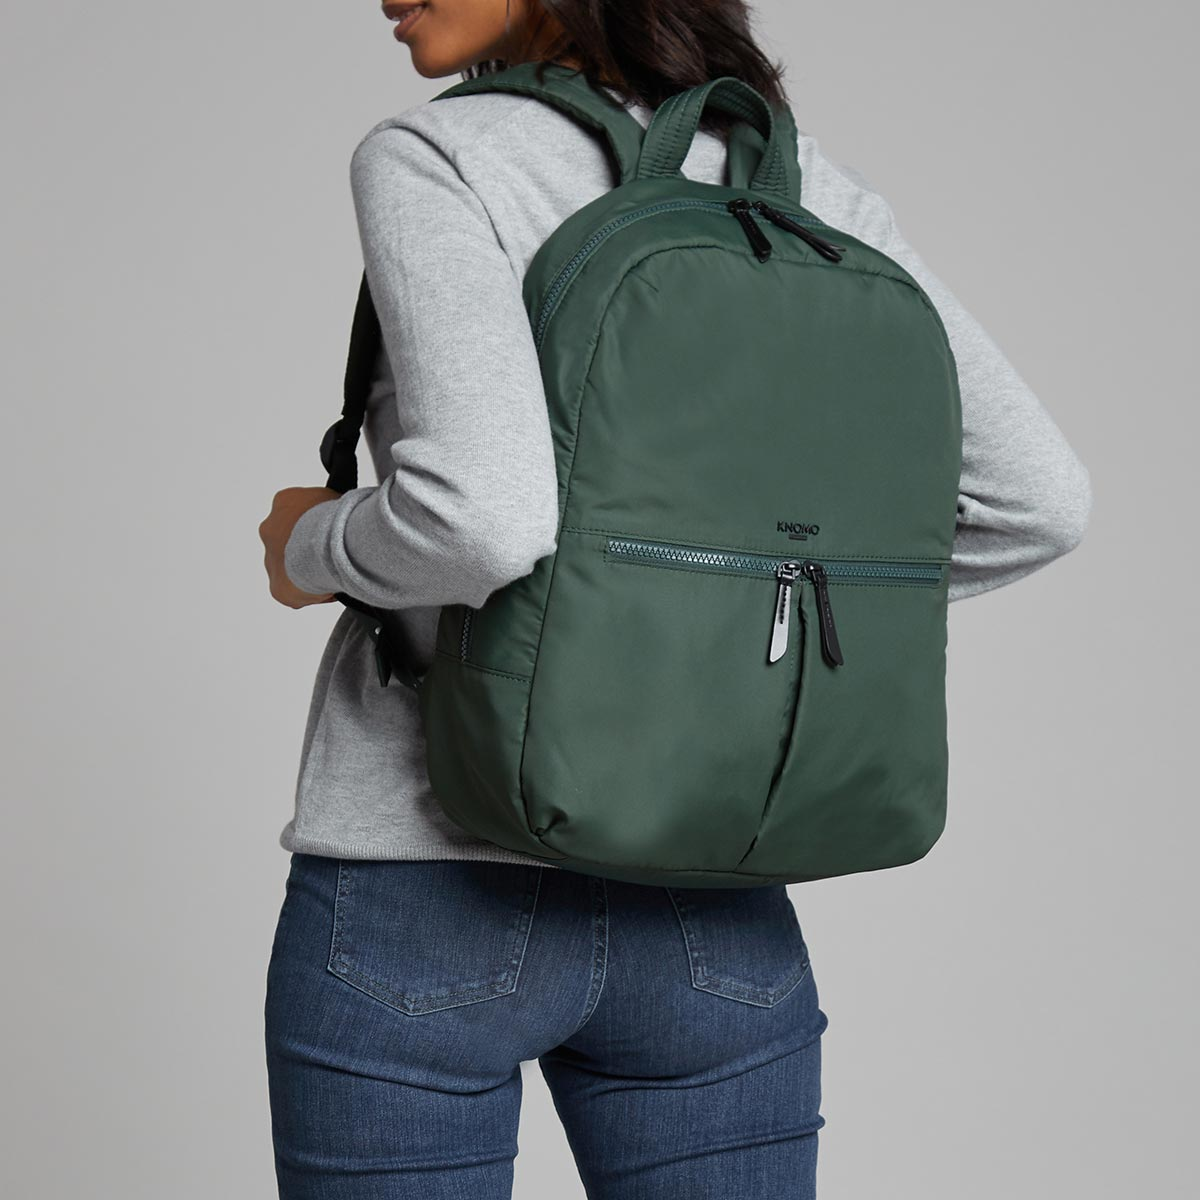 "KNOMO Berlin Laptop Backpack Female Model Wearing 15"" -  Bottle Green 